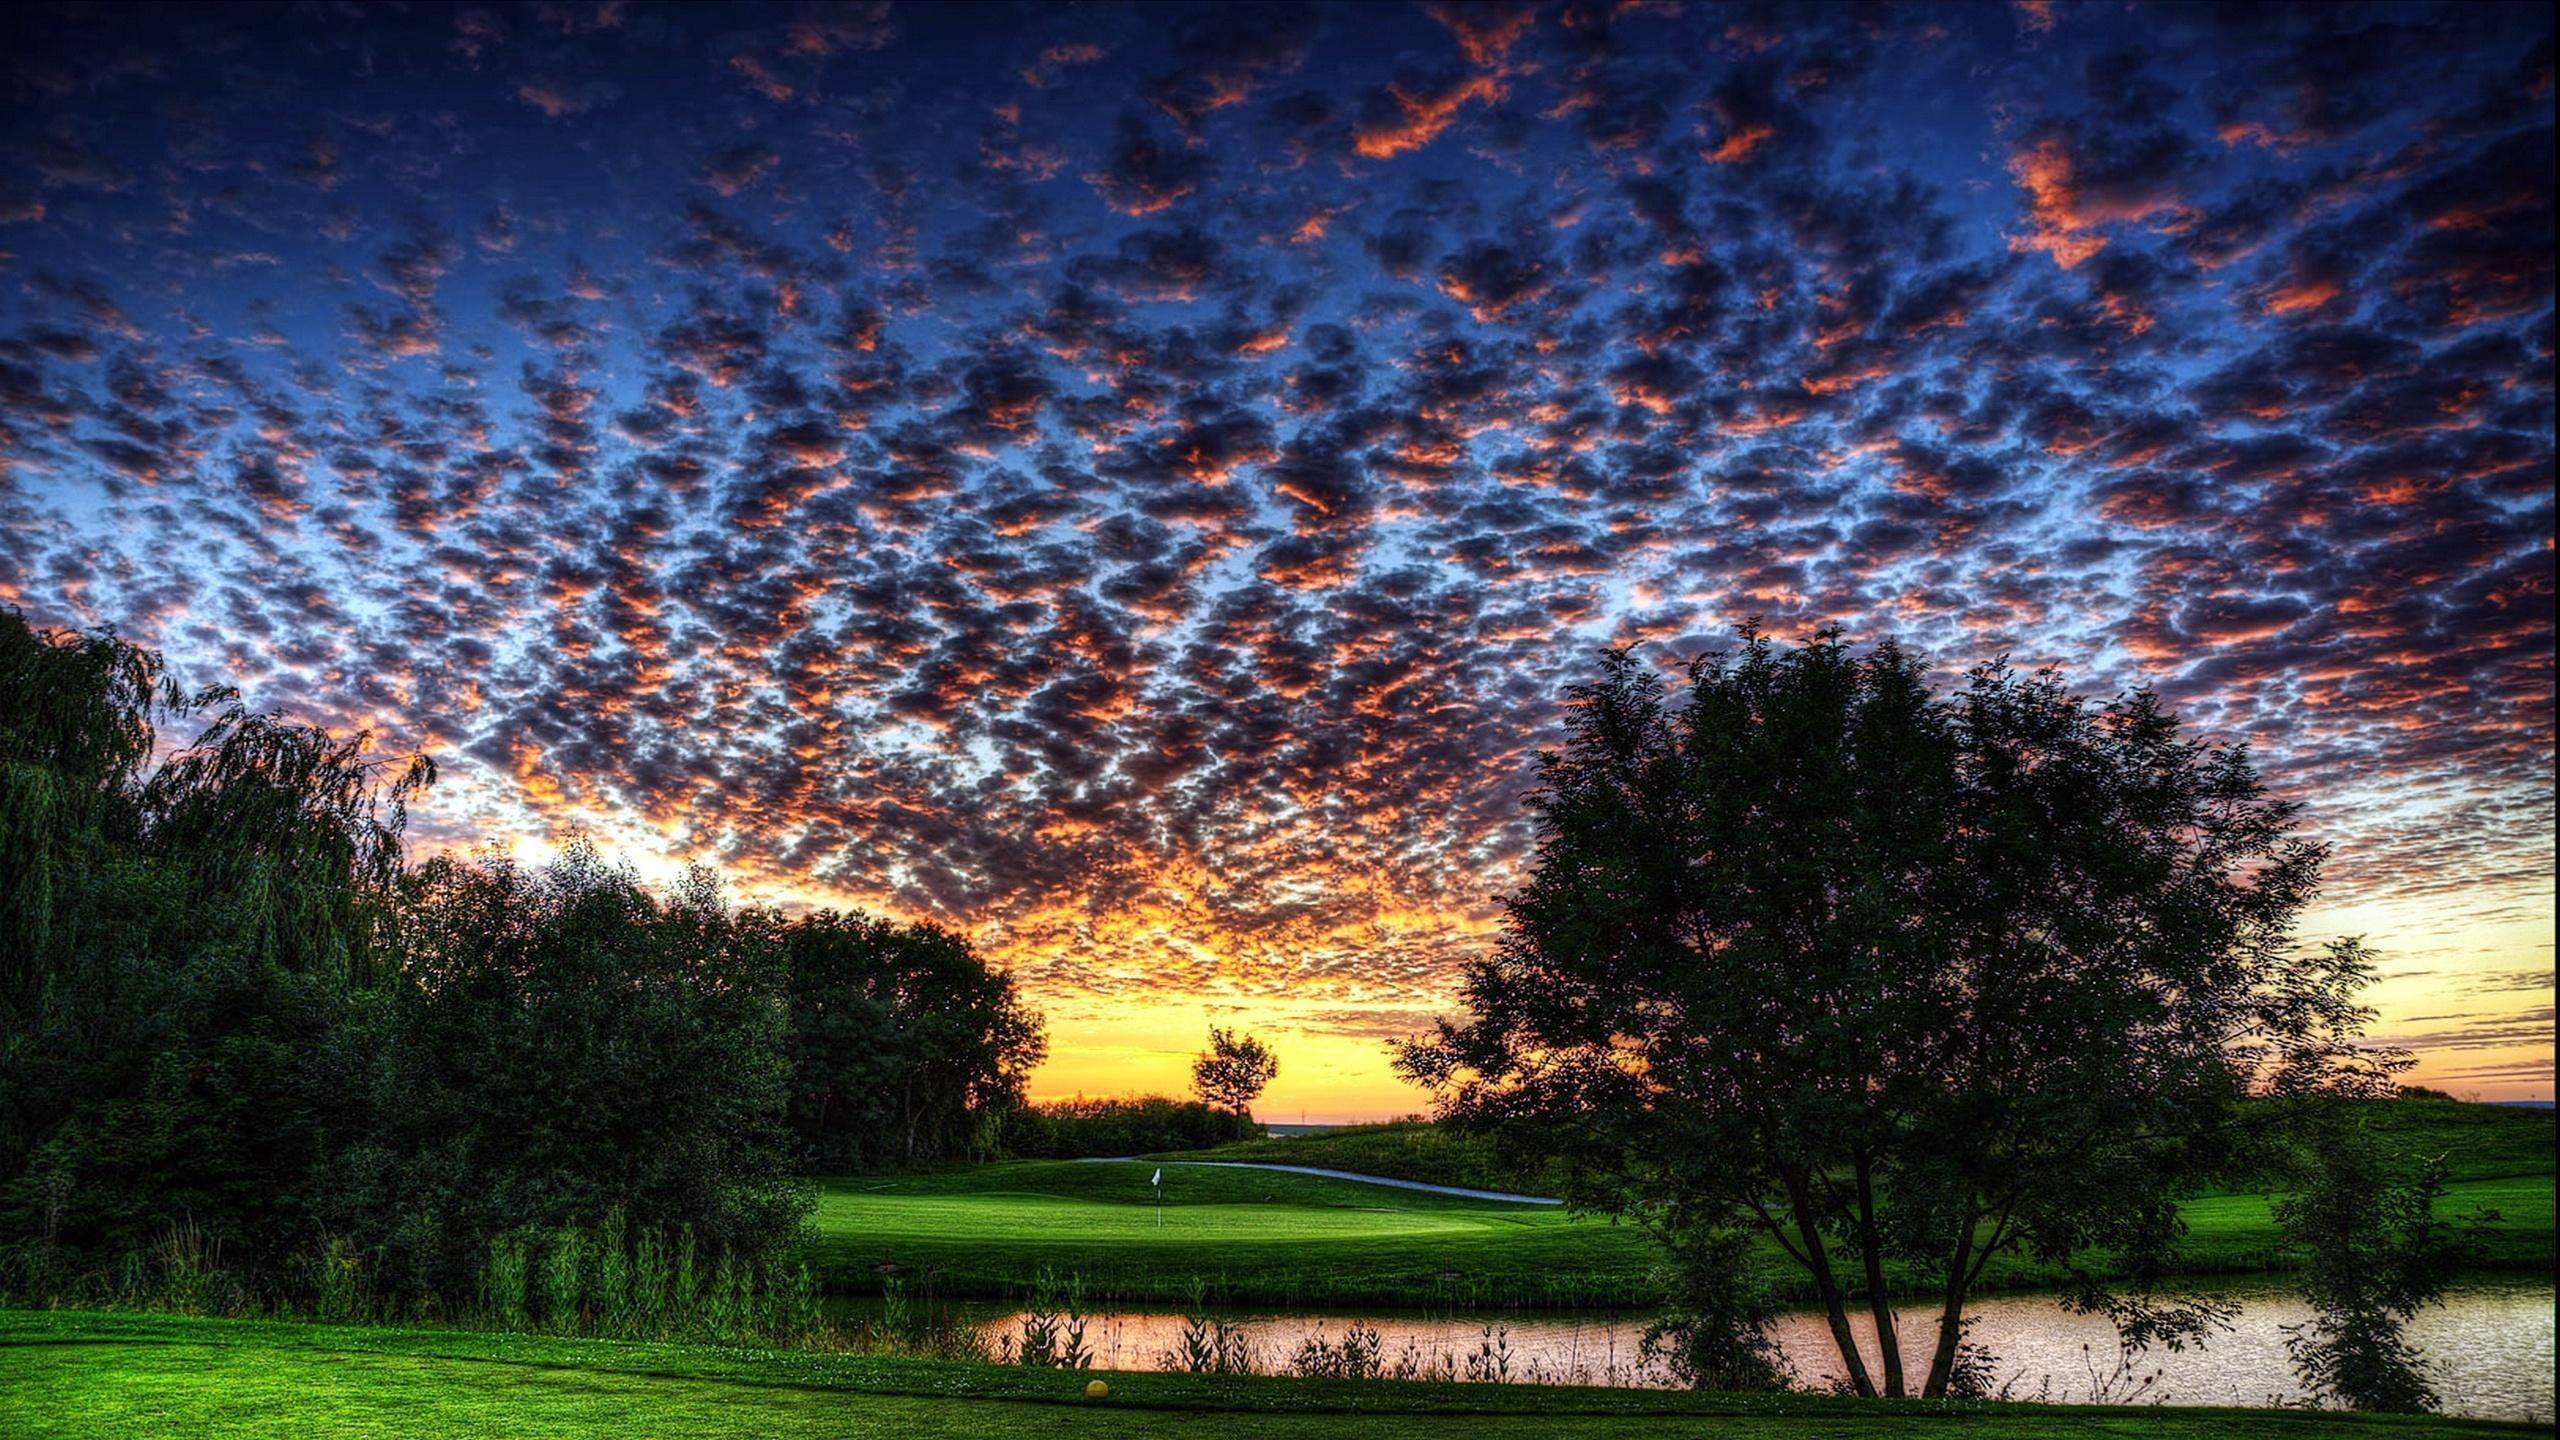 Golf Desktop Wallpapers K Ultra Hd 2560x1440